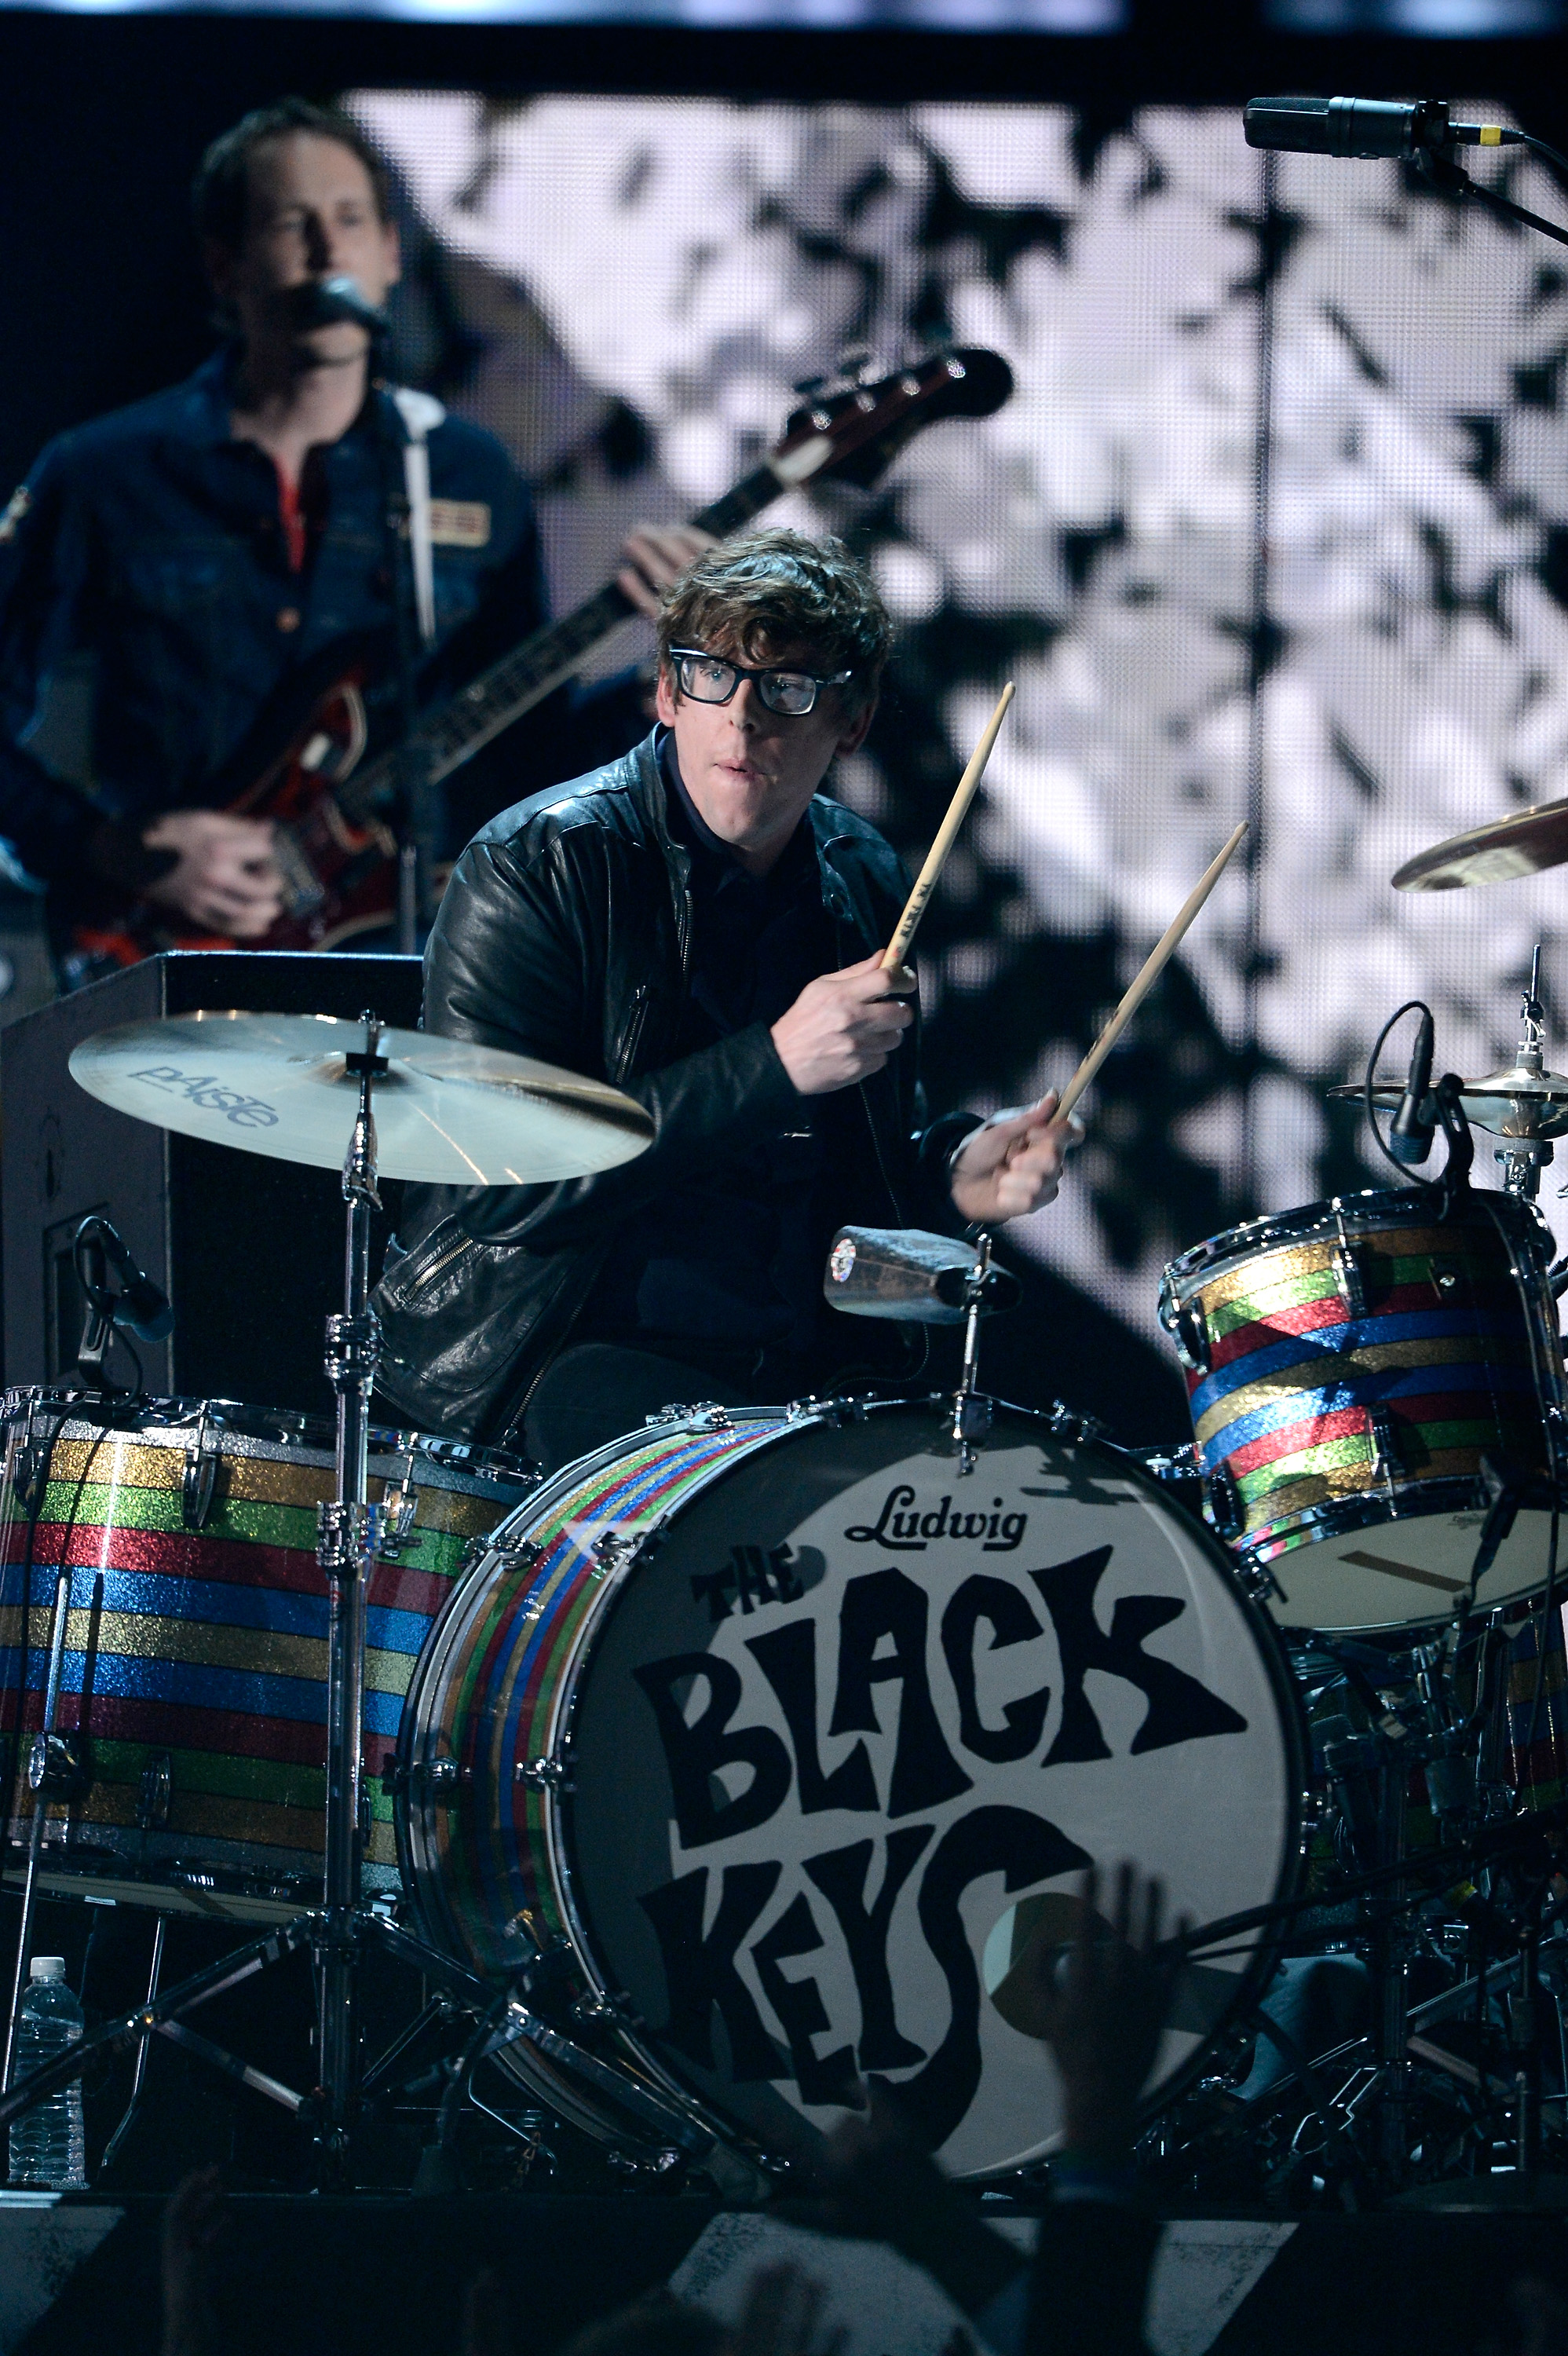 Patrick Carney from The Black Keys beat the drums on stage.